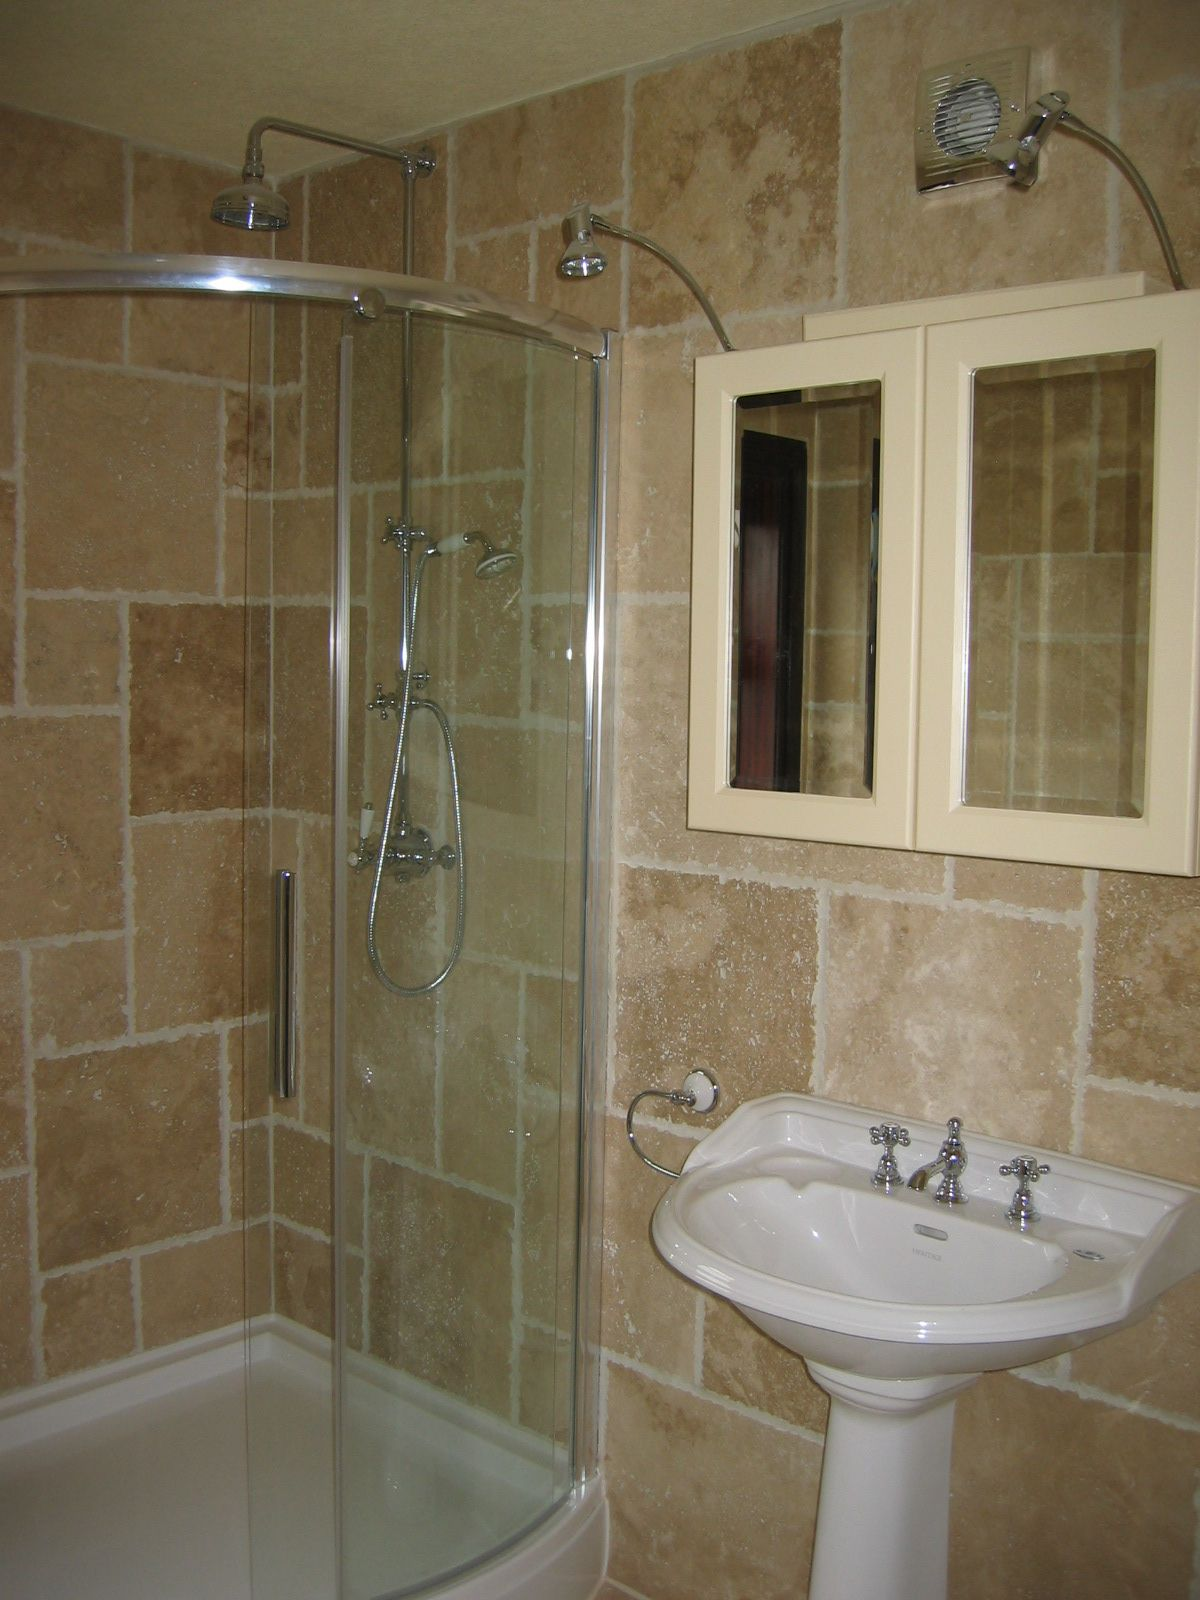 other bathroom decorating ideas budget pinterest fireplace gym ...